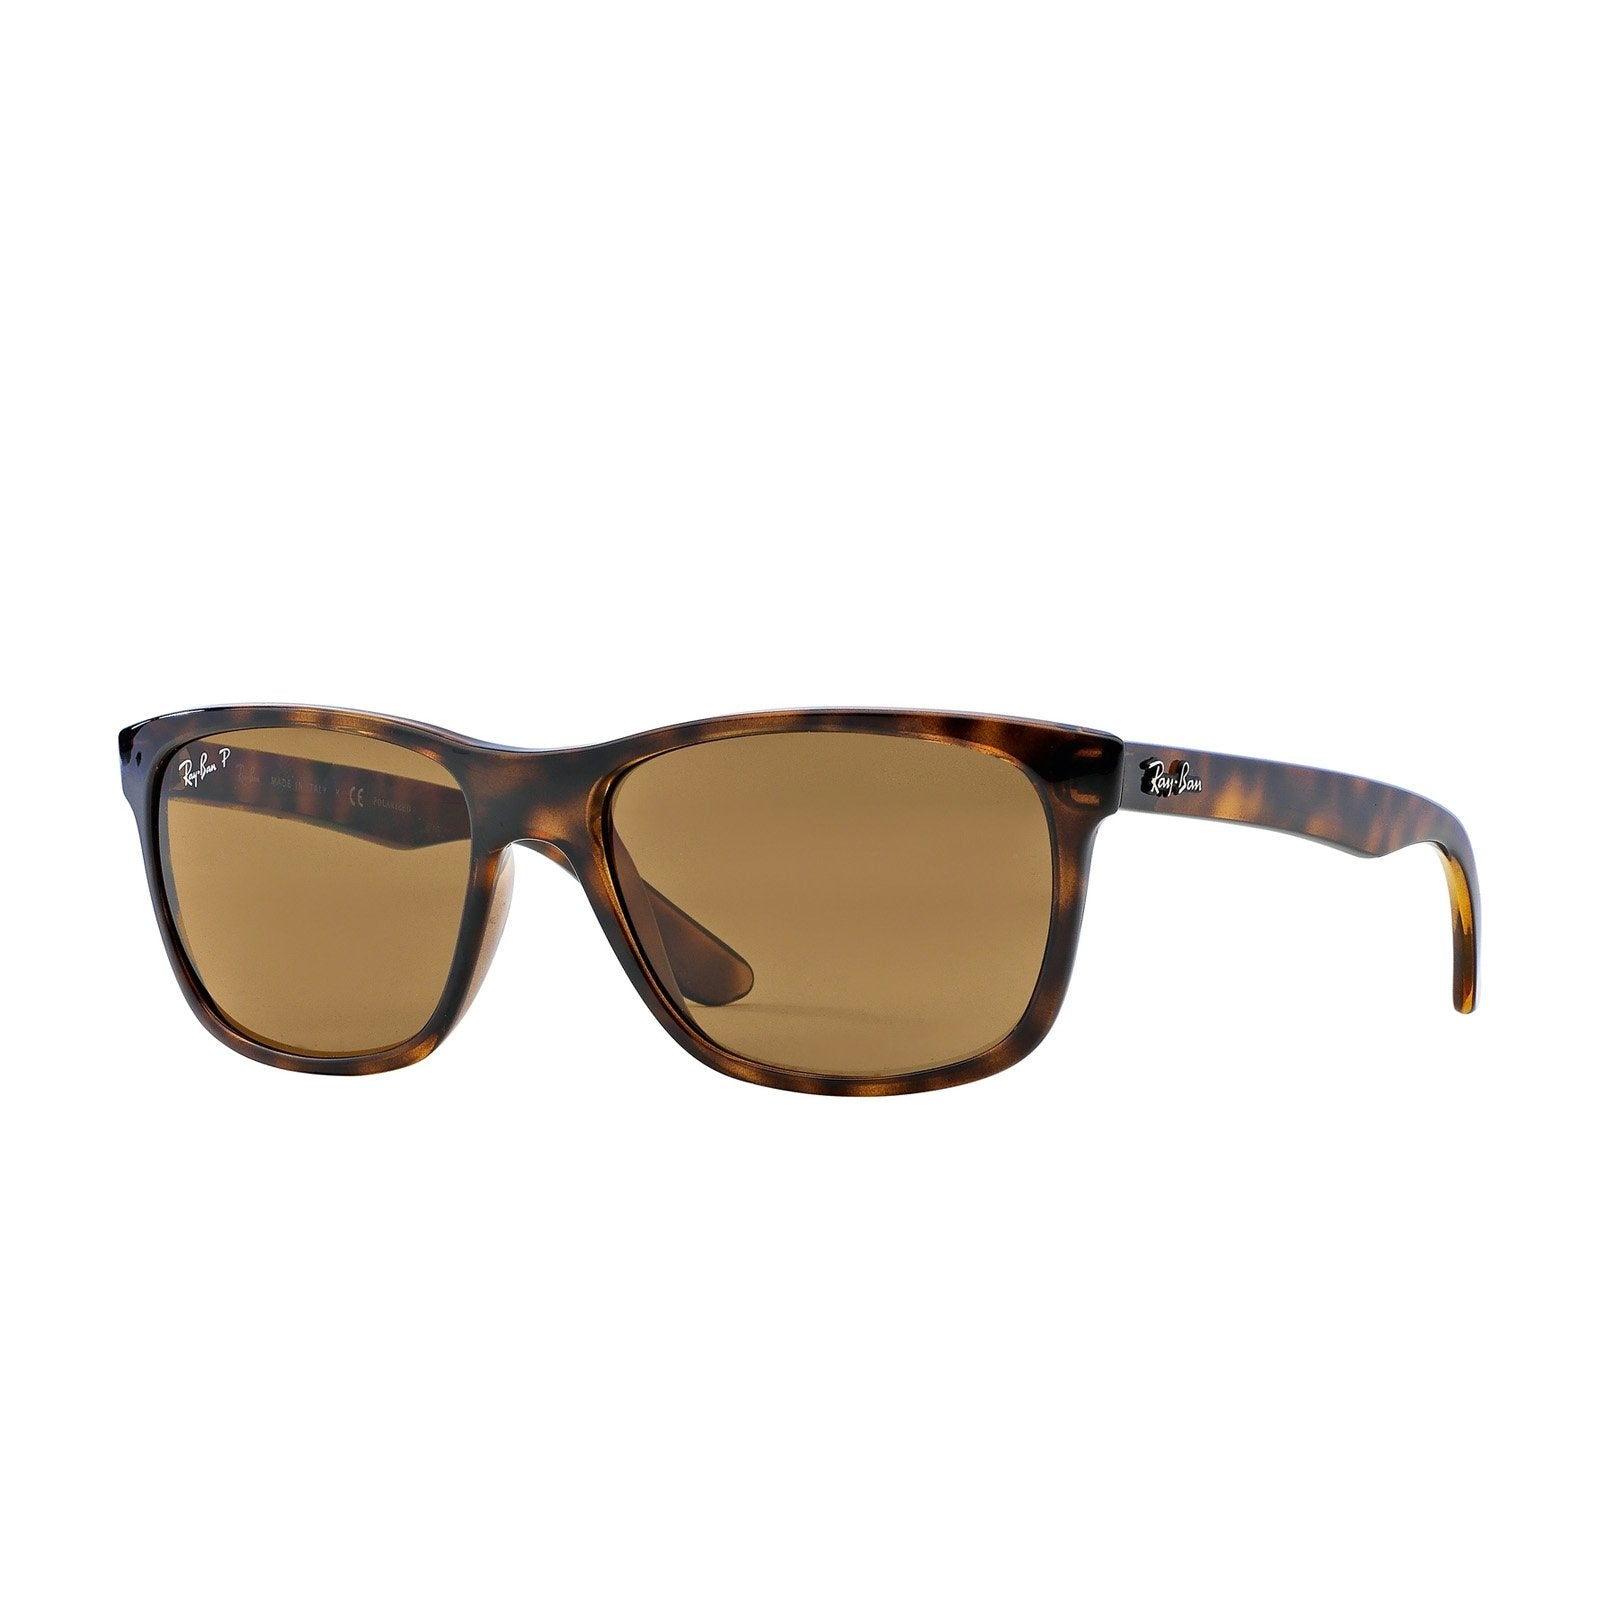 Ray-Ban RB4181 710/83 Sunglasses